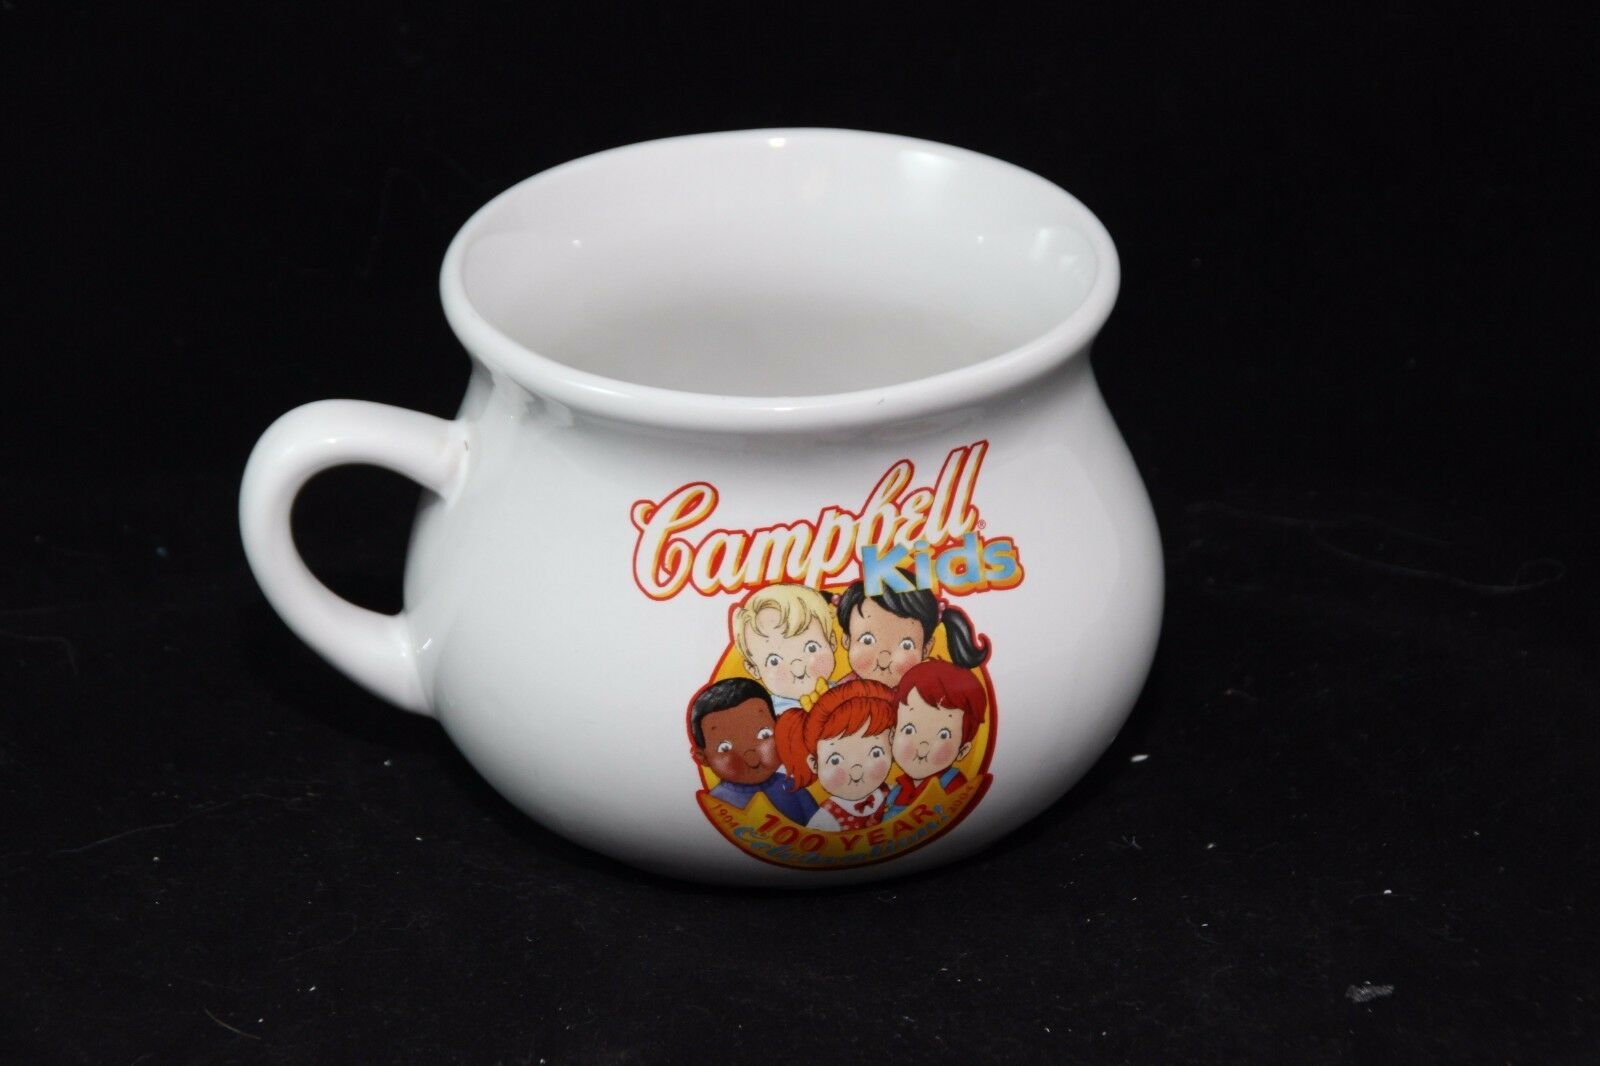 Campbells Kids Soup Mug 2003 100th Anniversary Oversize